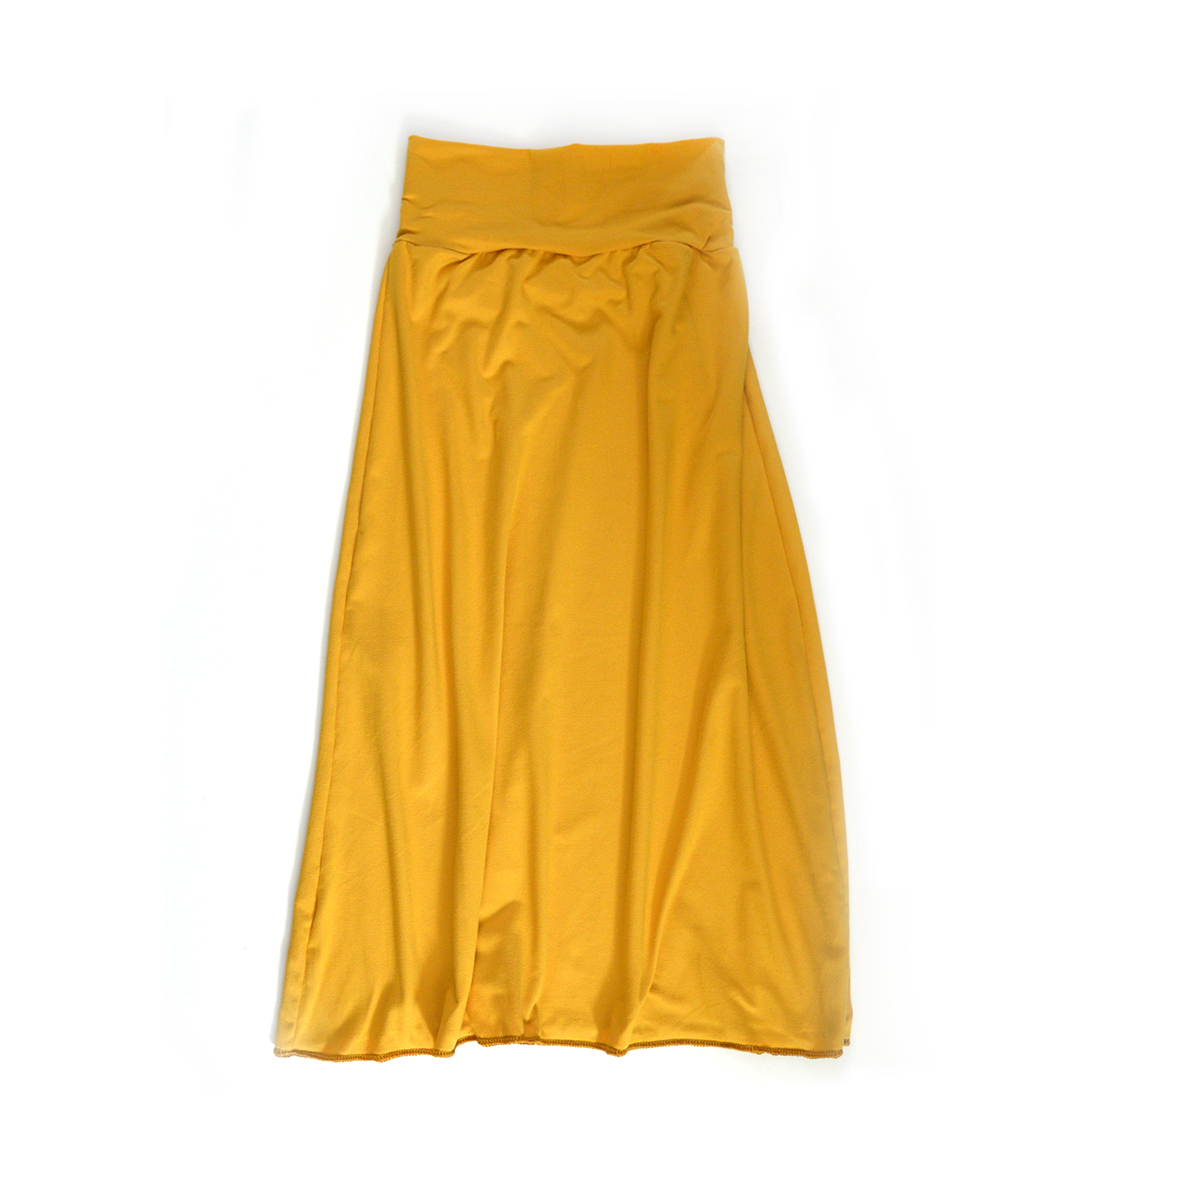 Little Sprout™ Girl's Maxi Skirt - Golden Child 00846